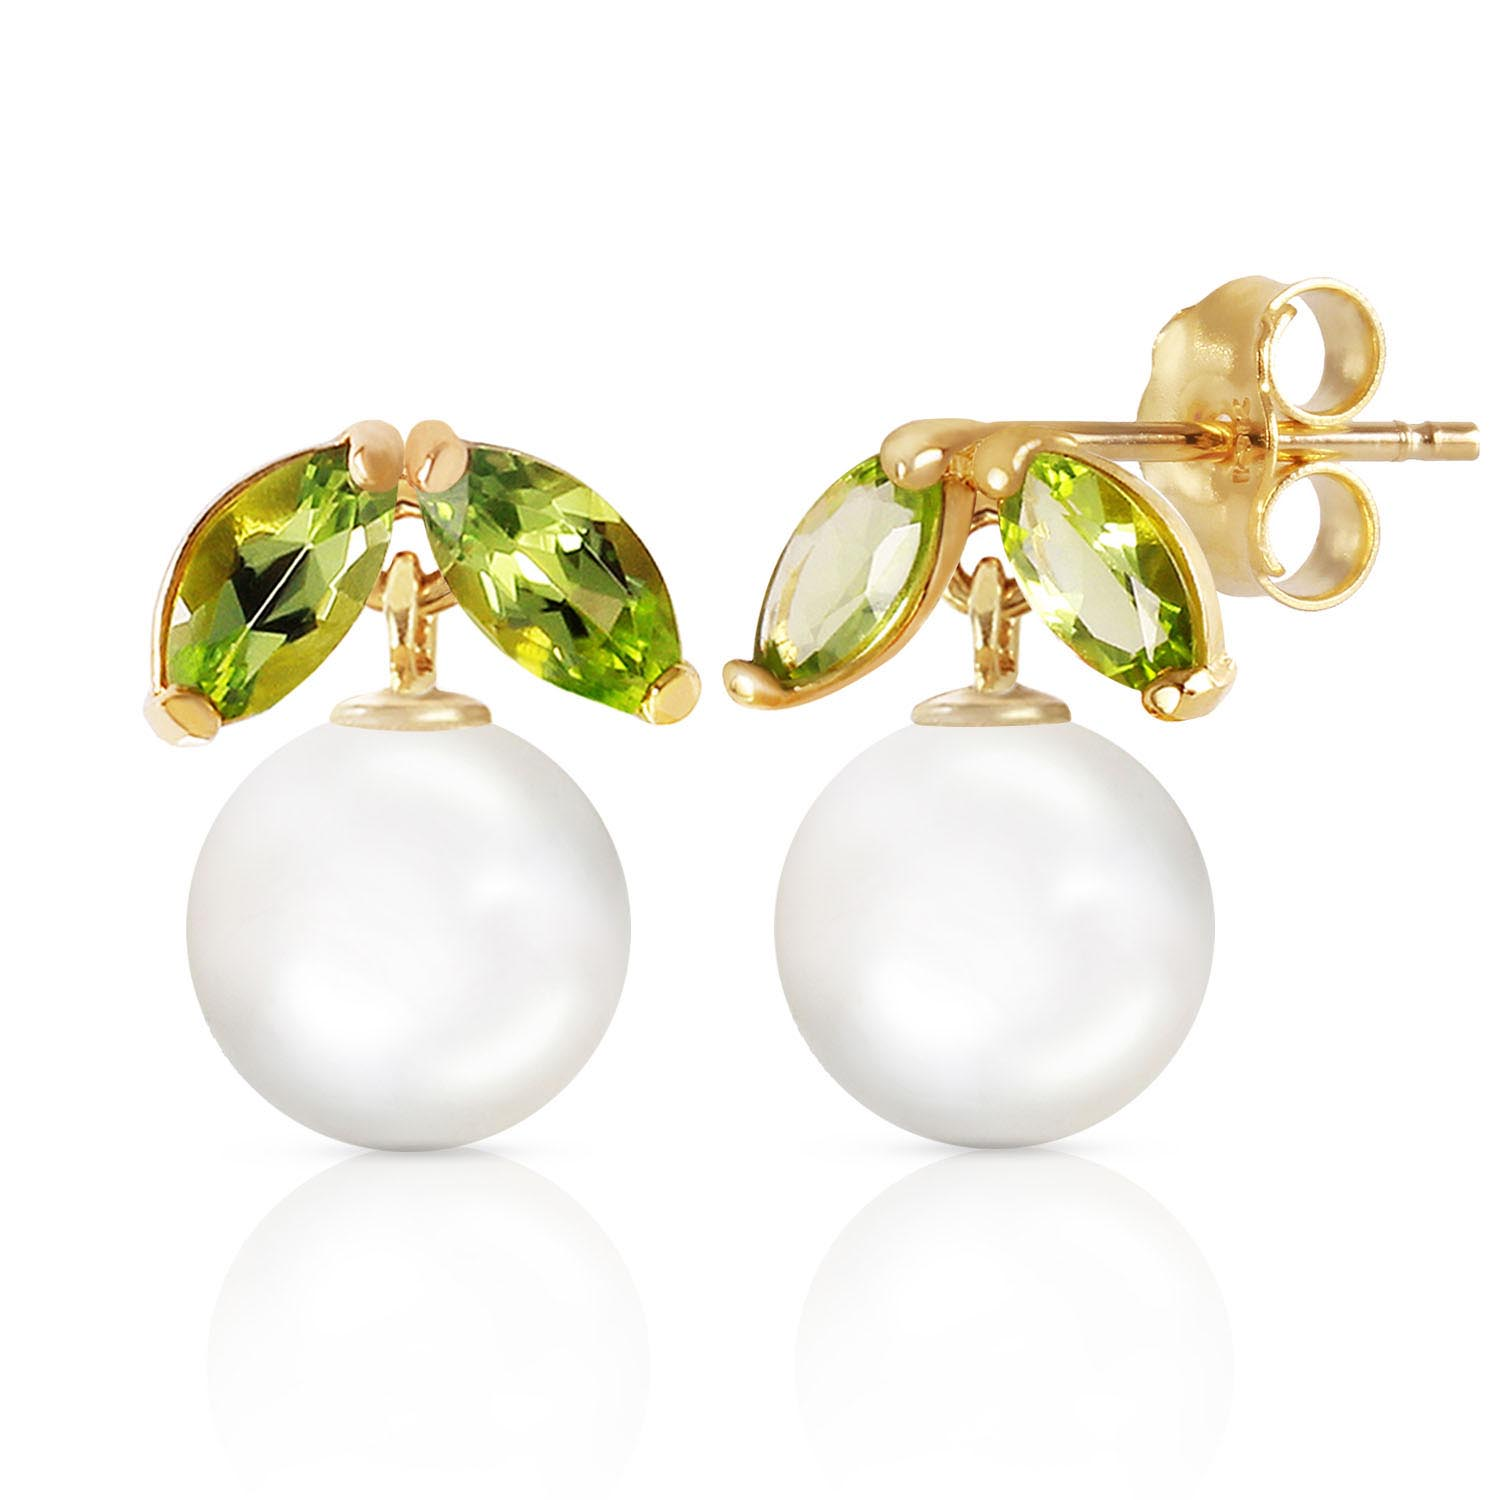 Pearl & Peridot Snowdrop Stud Earrings in 9ct Gold